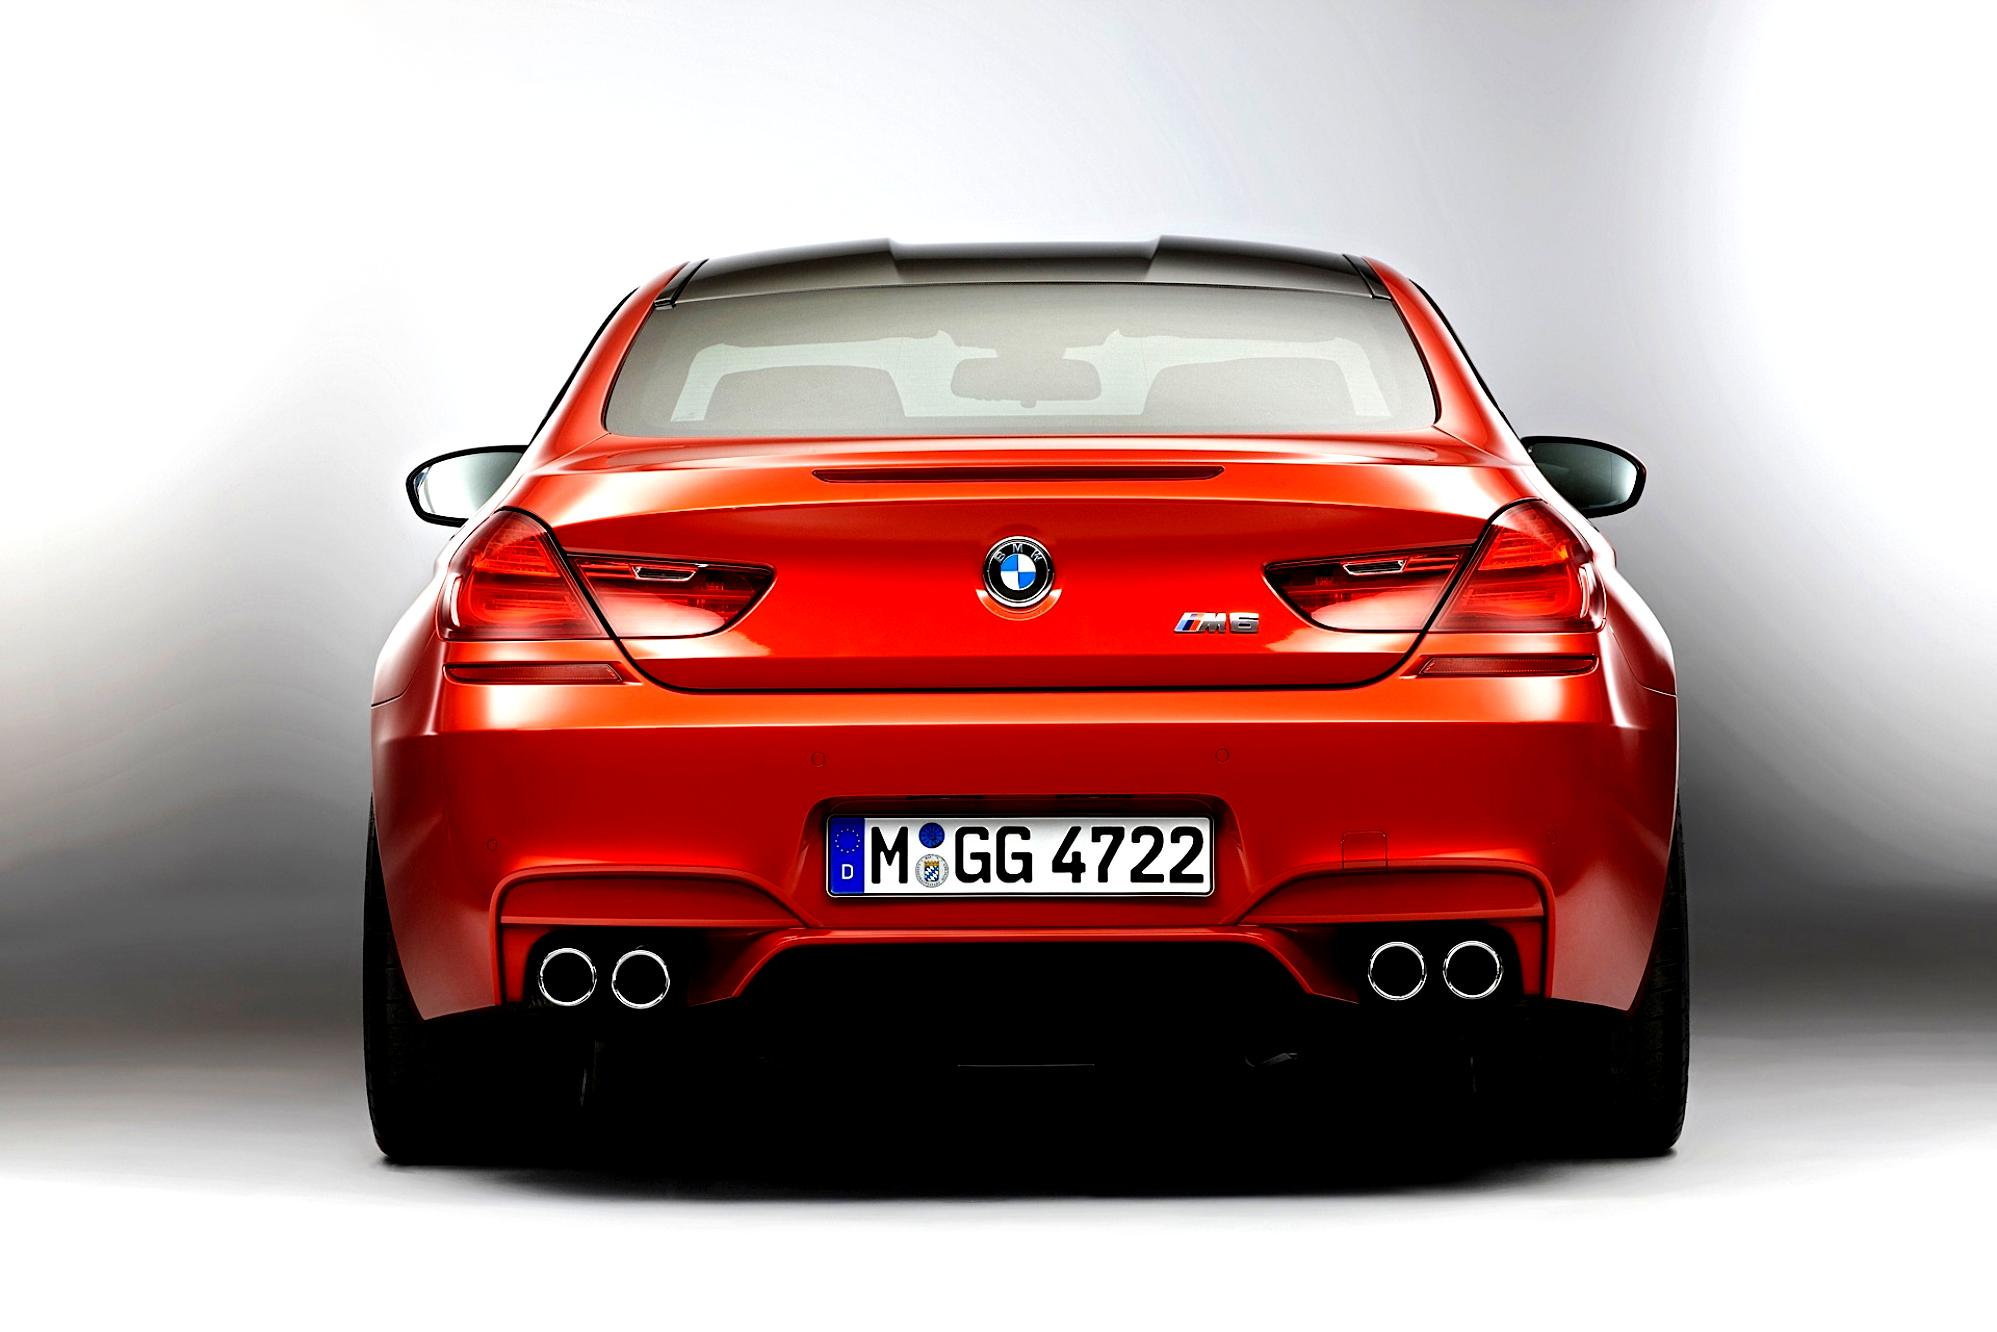 BMW M6 Coupe F13 2012 #118